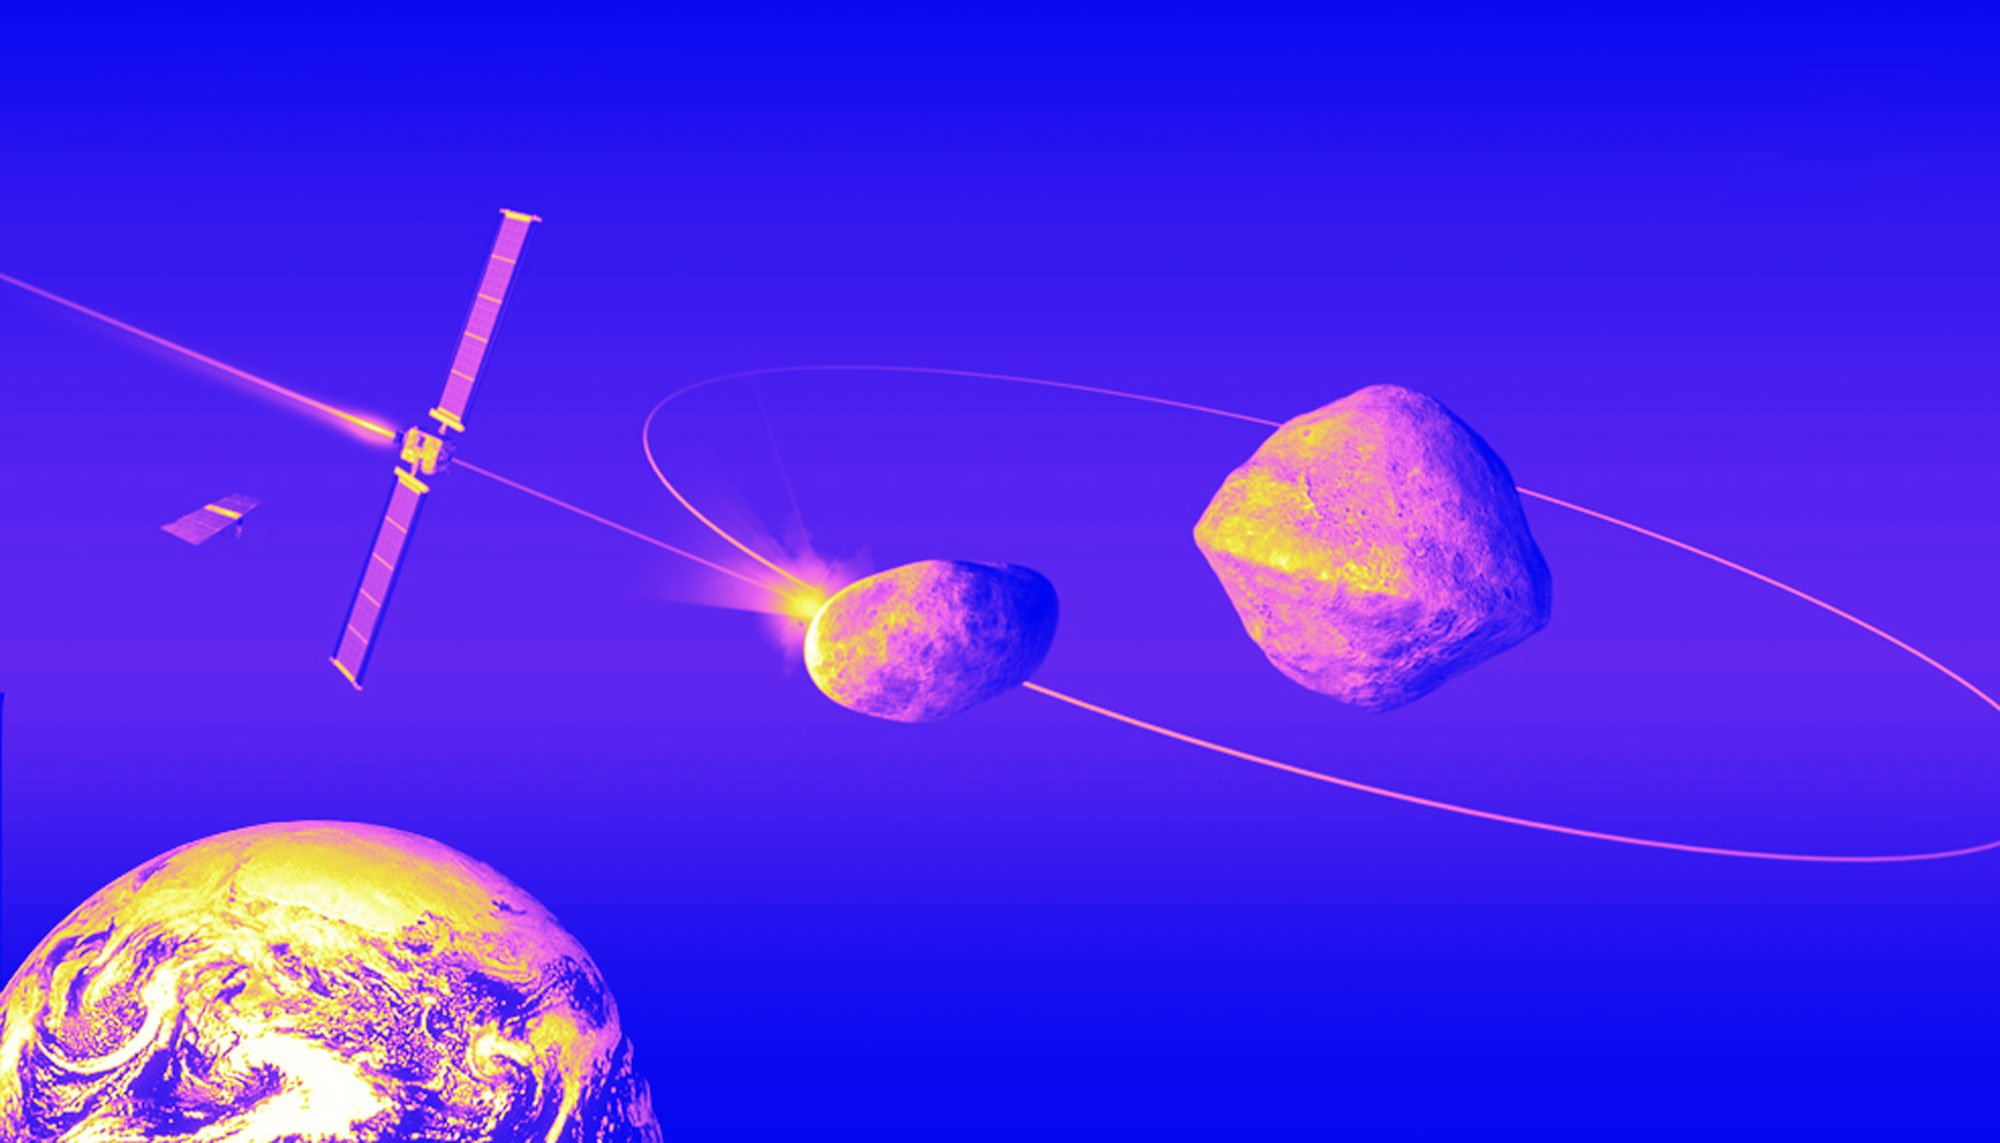 We're going to slam a spacecraft into an asteroid to try to deflect it